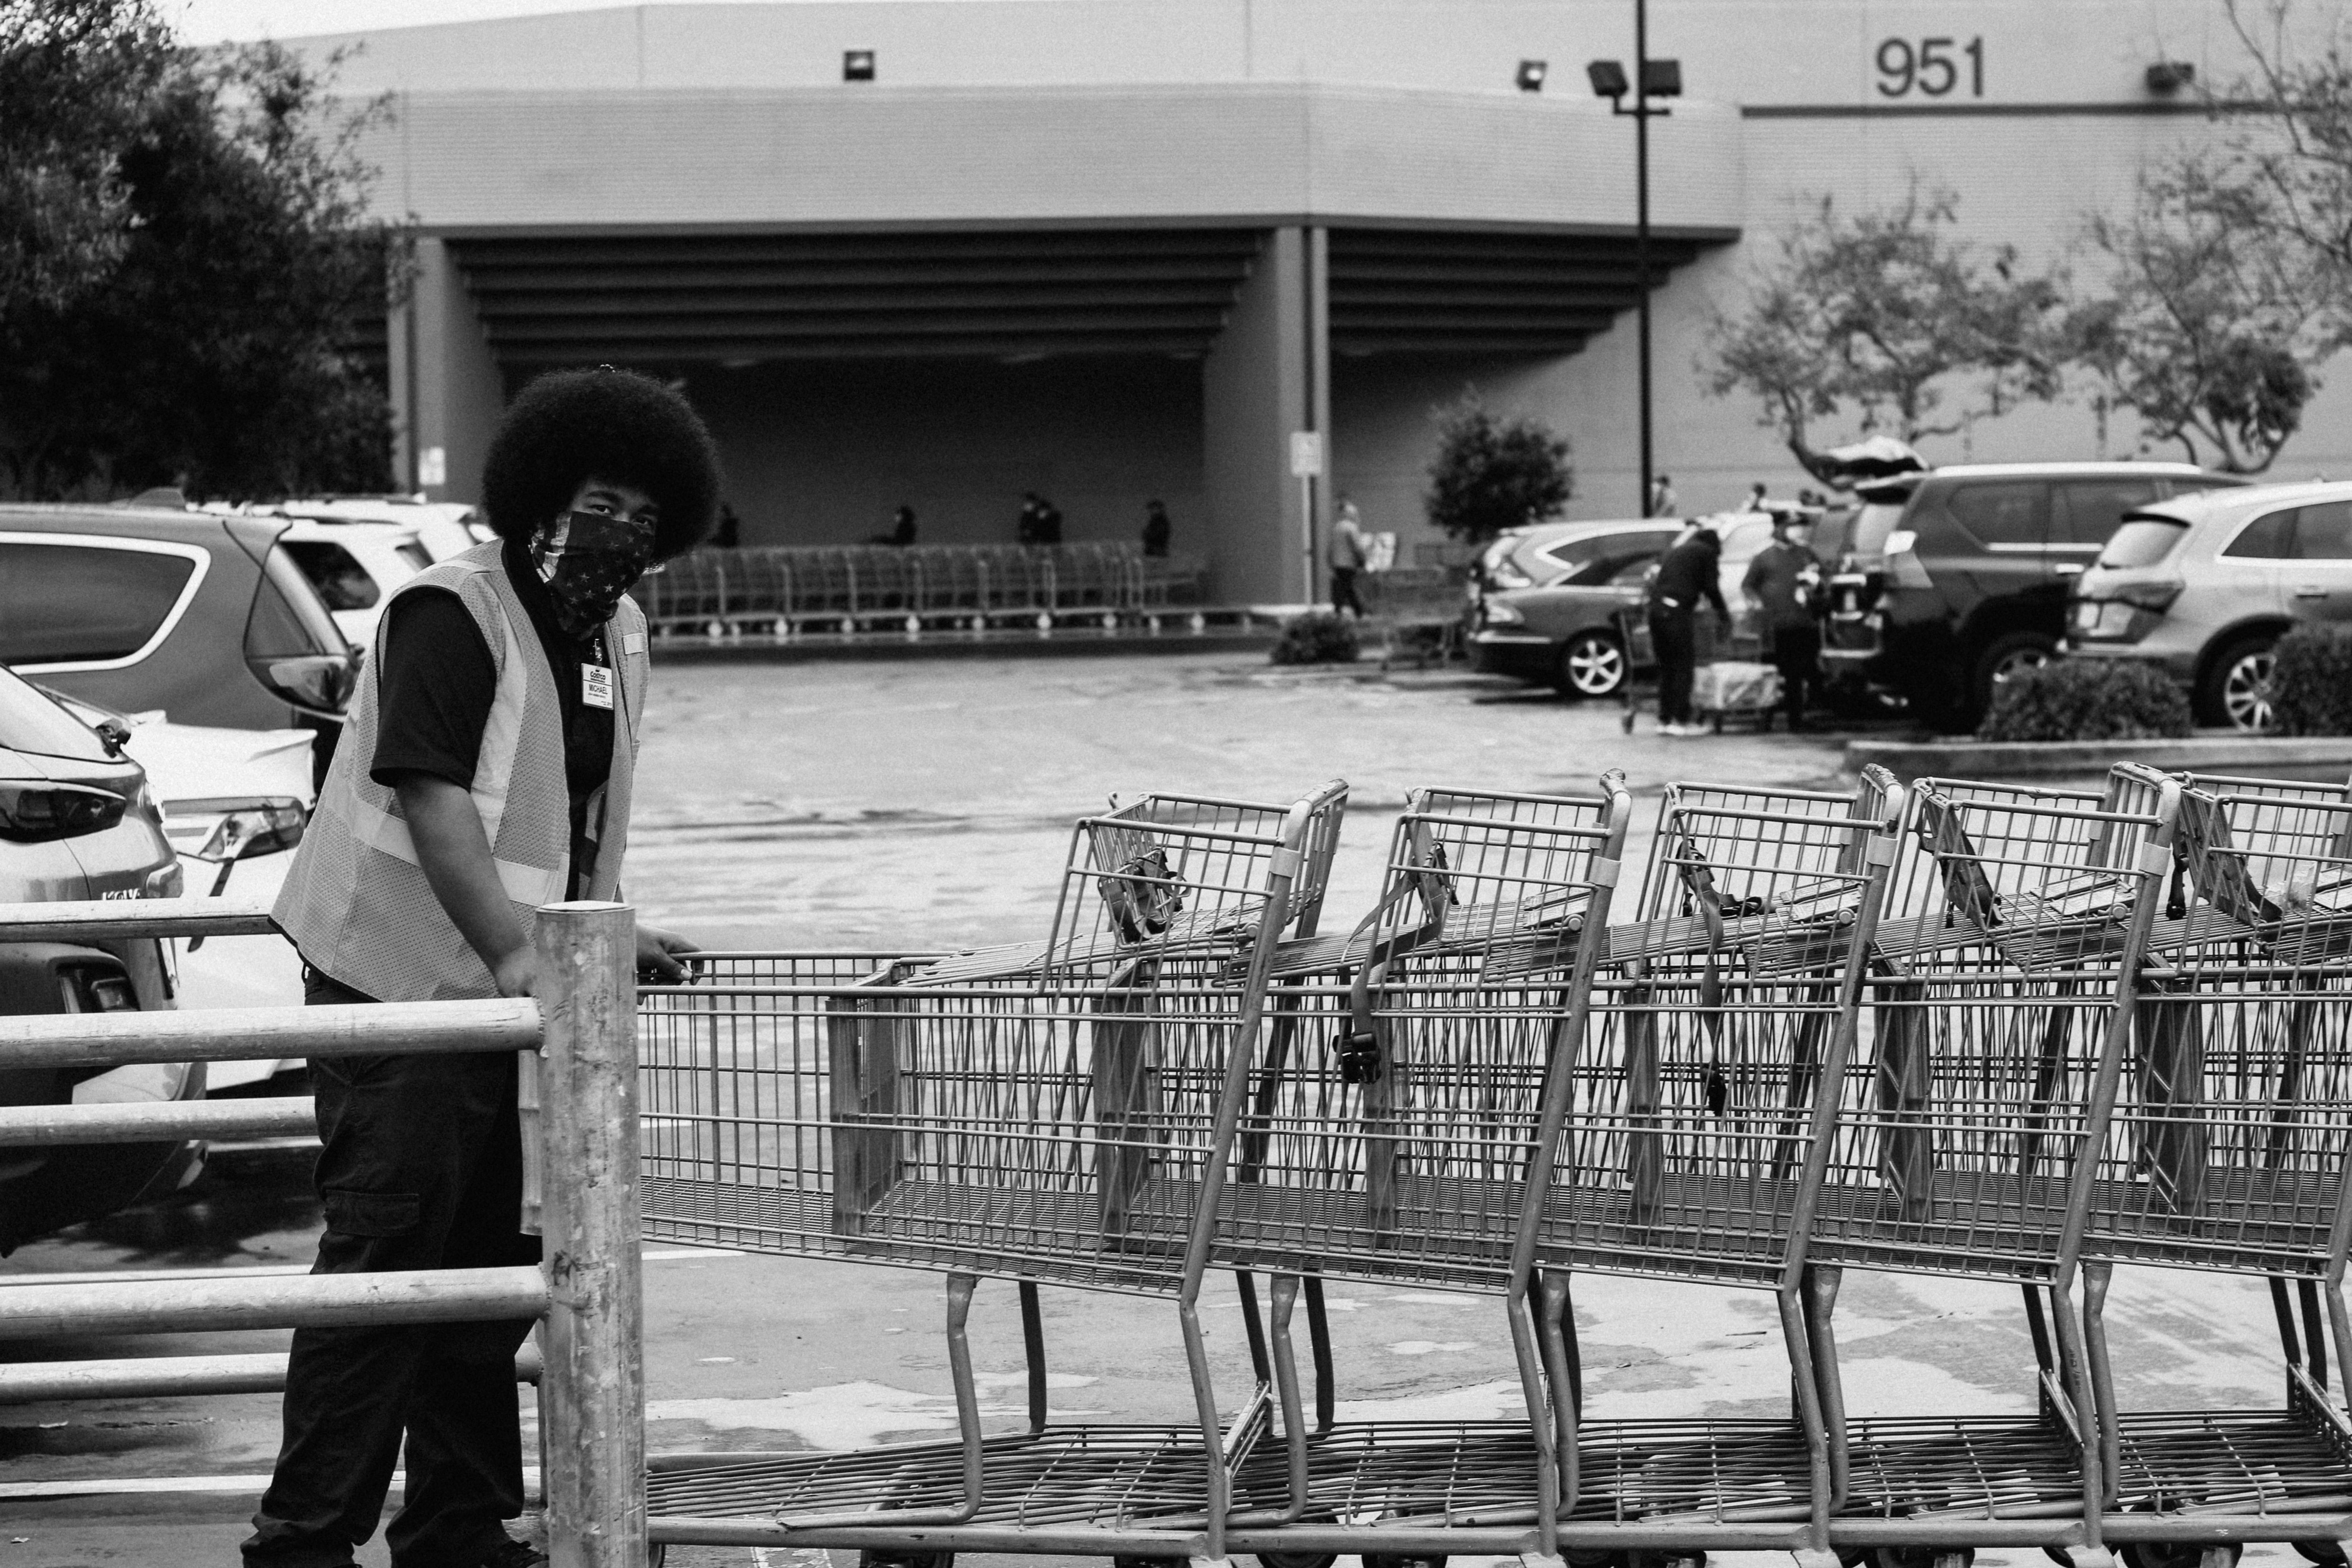 A black man, wearing safety vest and mask made from a bandana, pushes a line of grocery carts in a parking lot